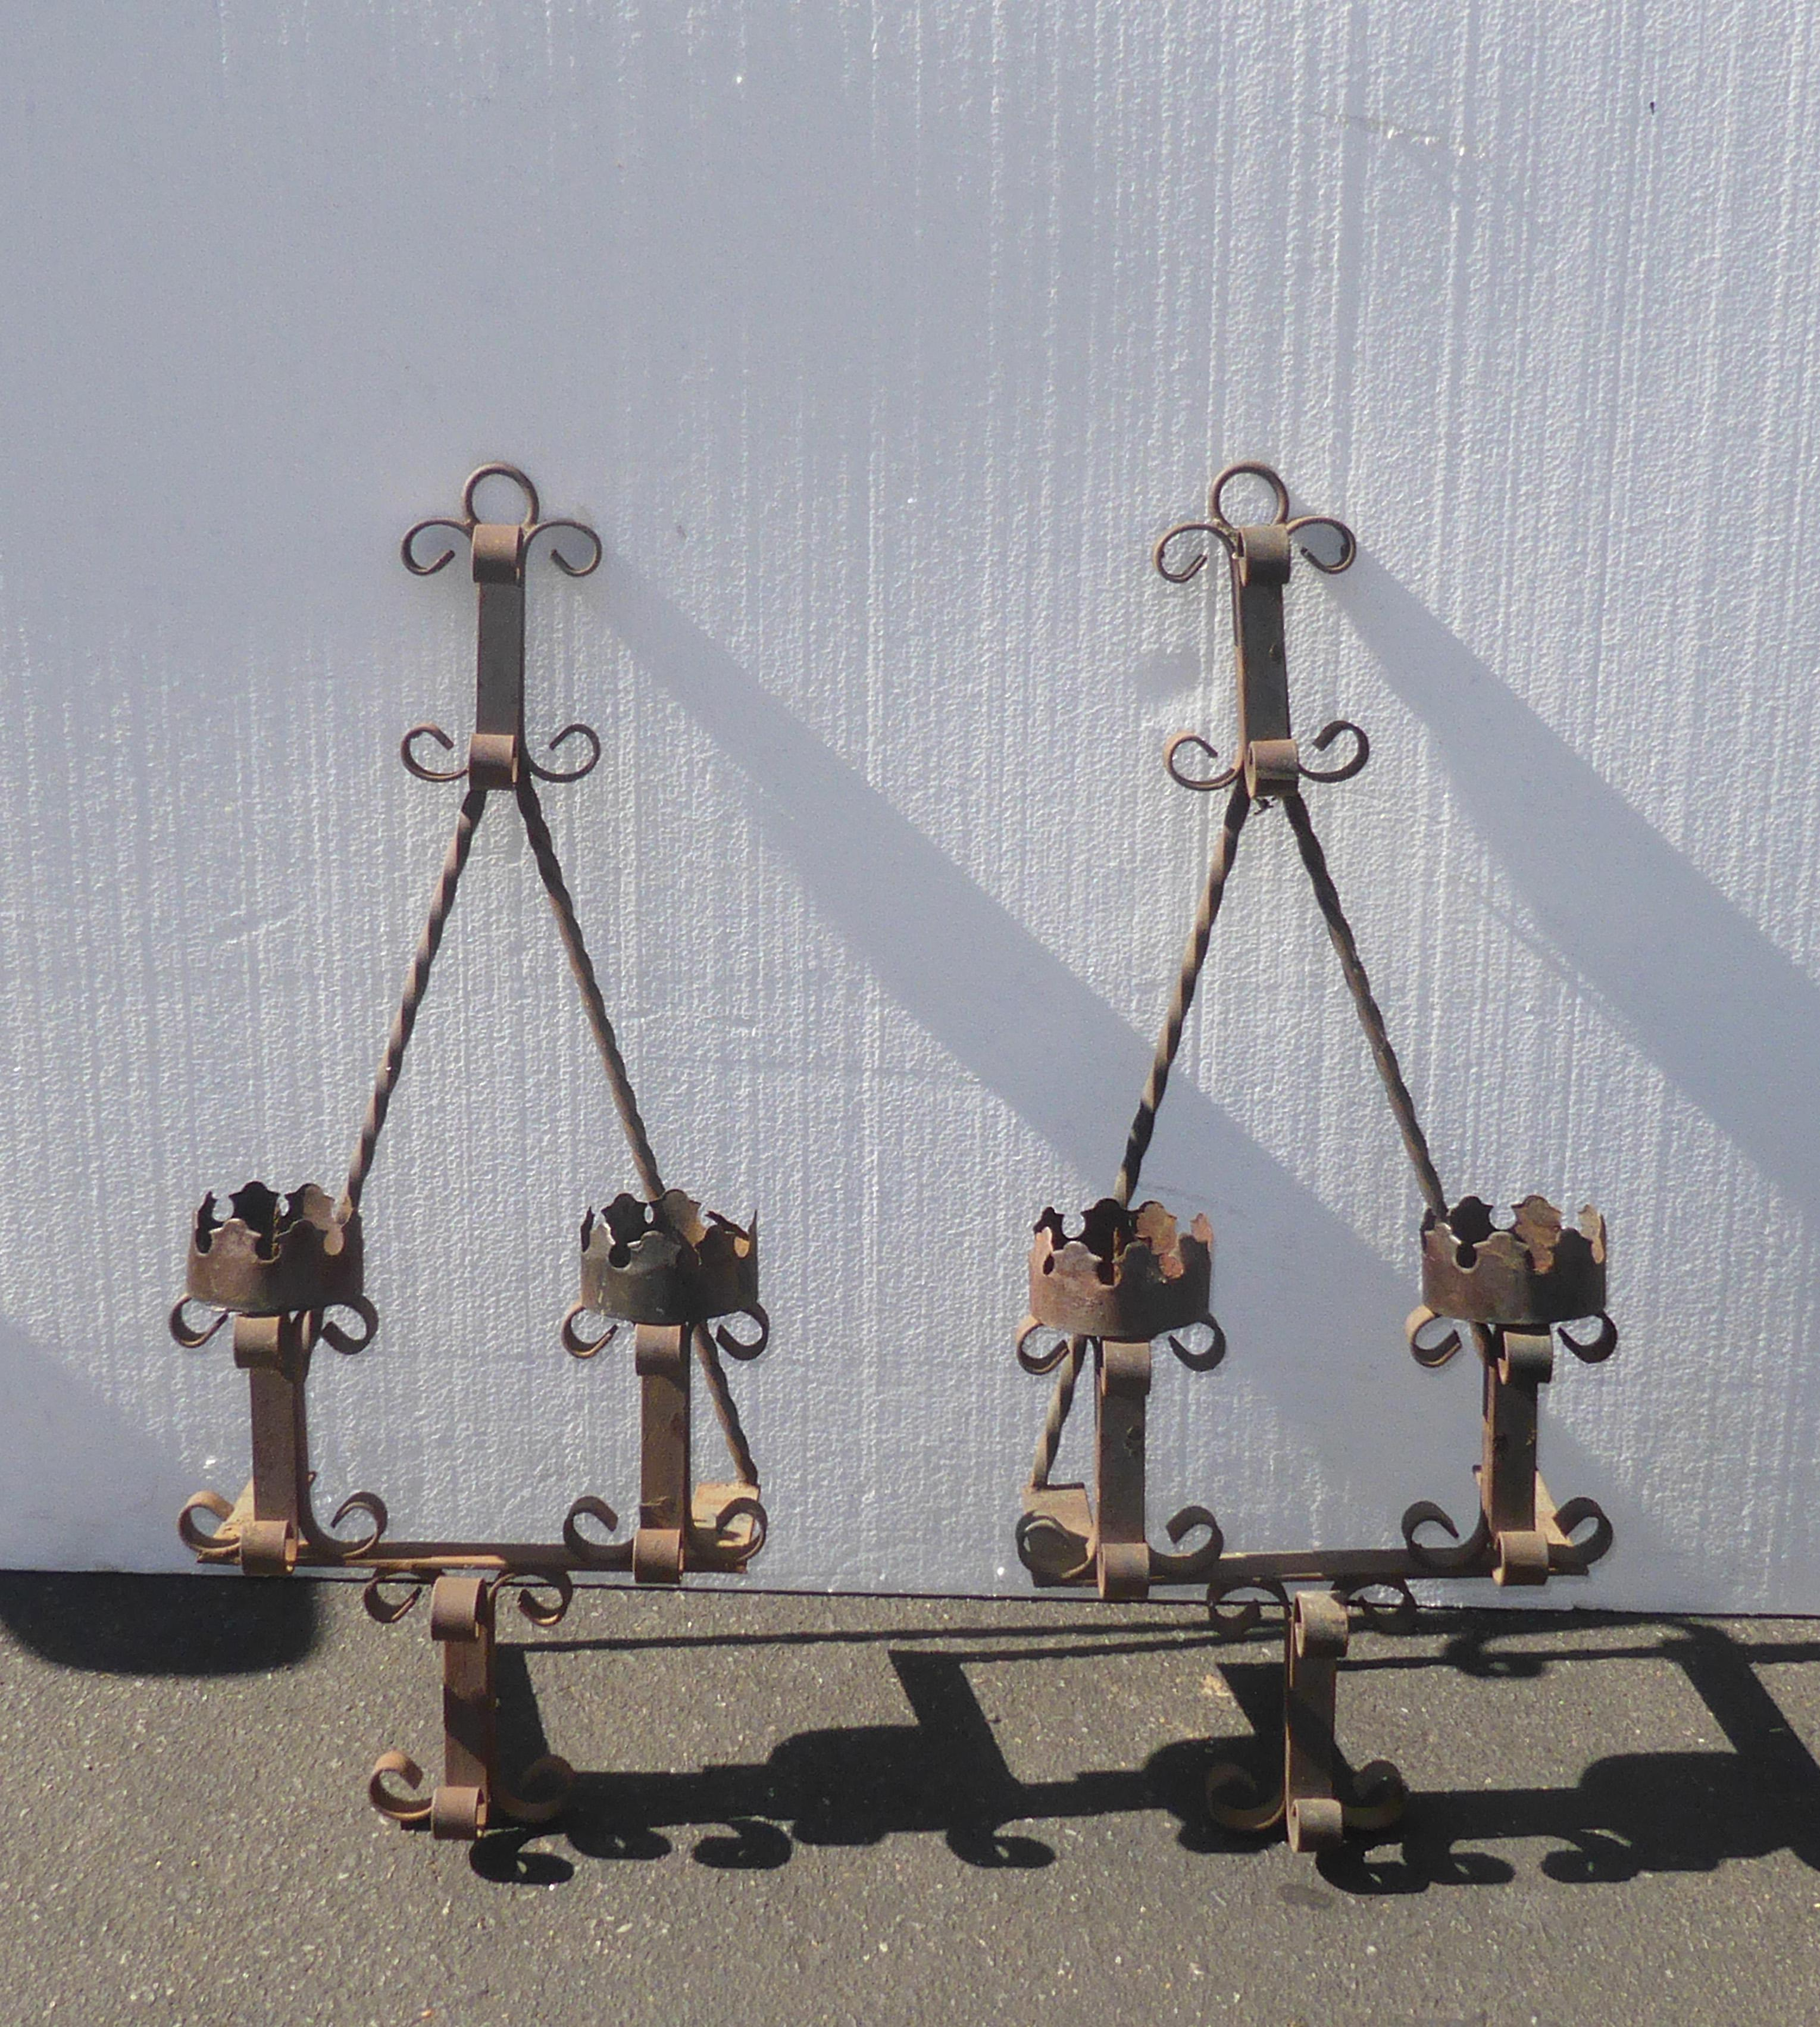 Pair of Vintage Rustic Spanish Style Wrought Iron Wall ... on Antique Wrought Iron Wall Candle Holders id=42696